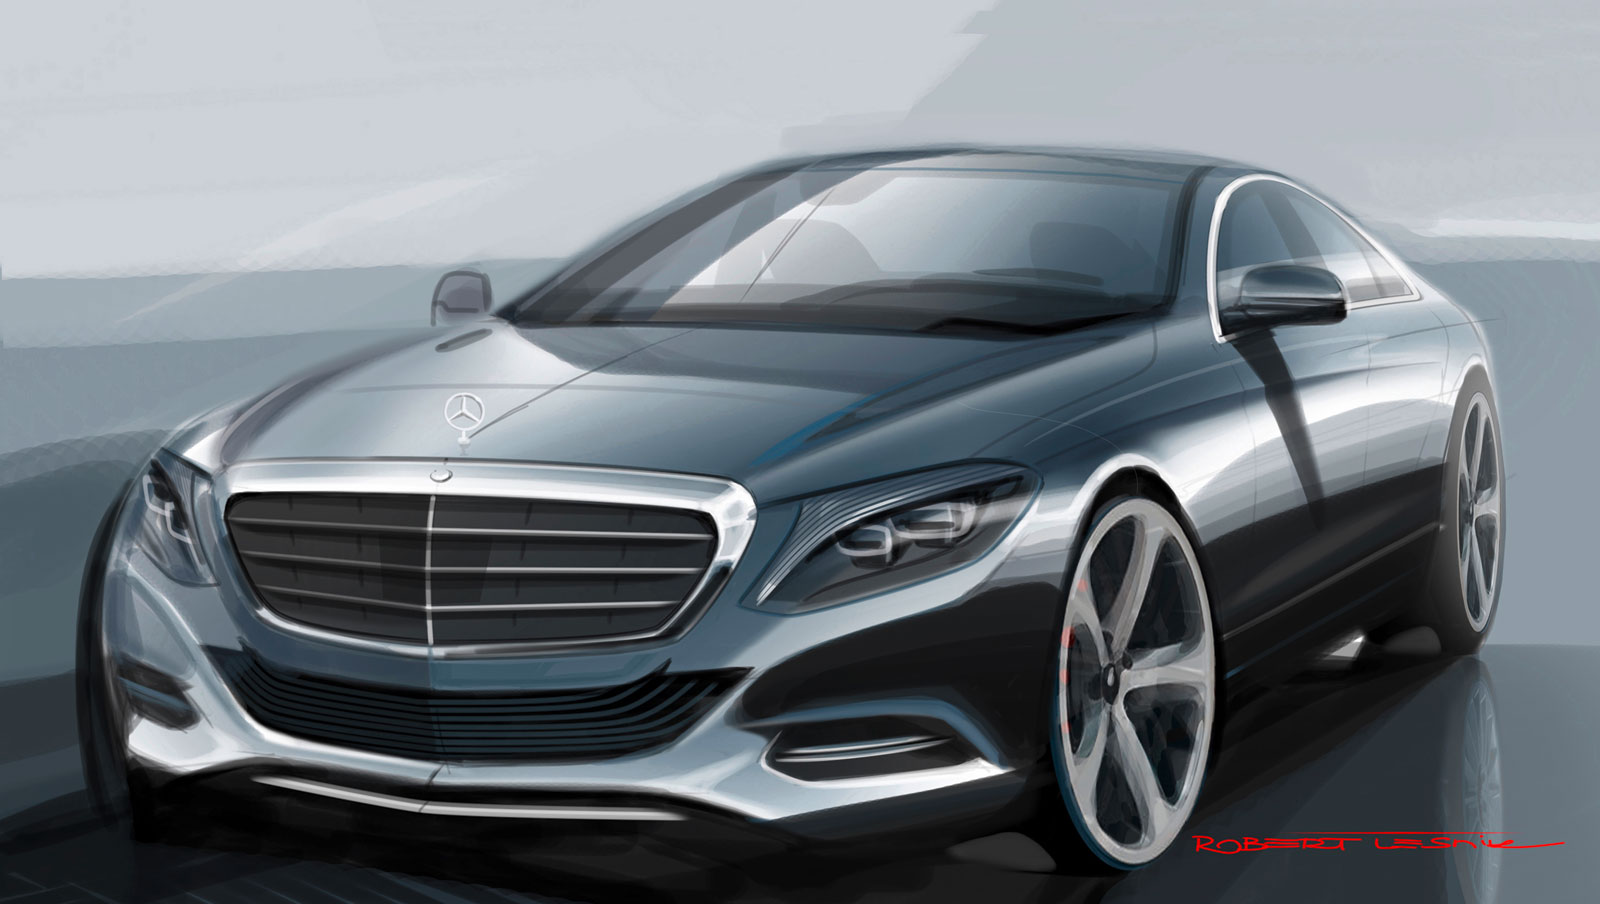 2014 mercedes benz s class design sketch car body design for What is the newest mercedes benz